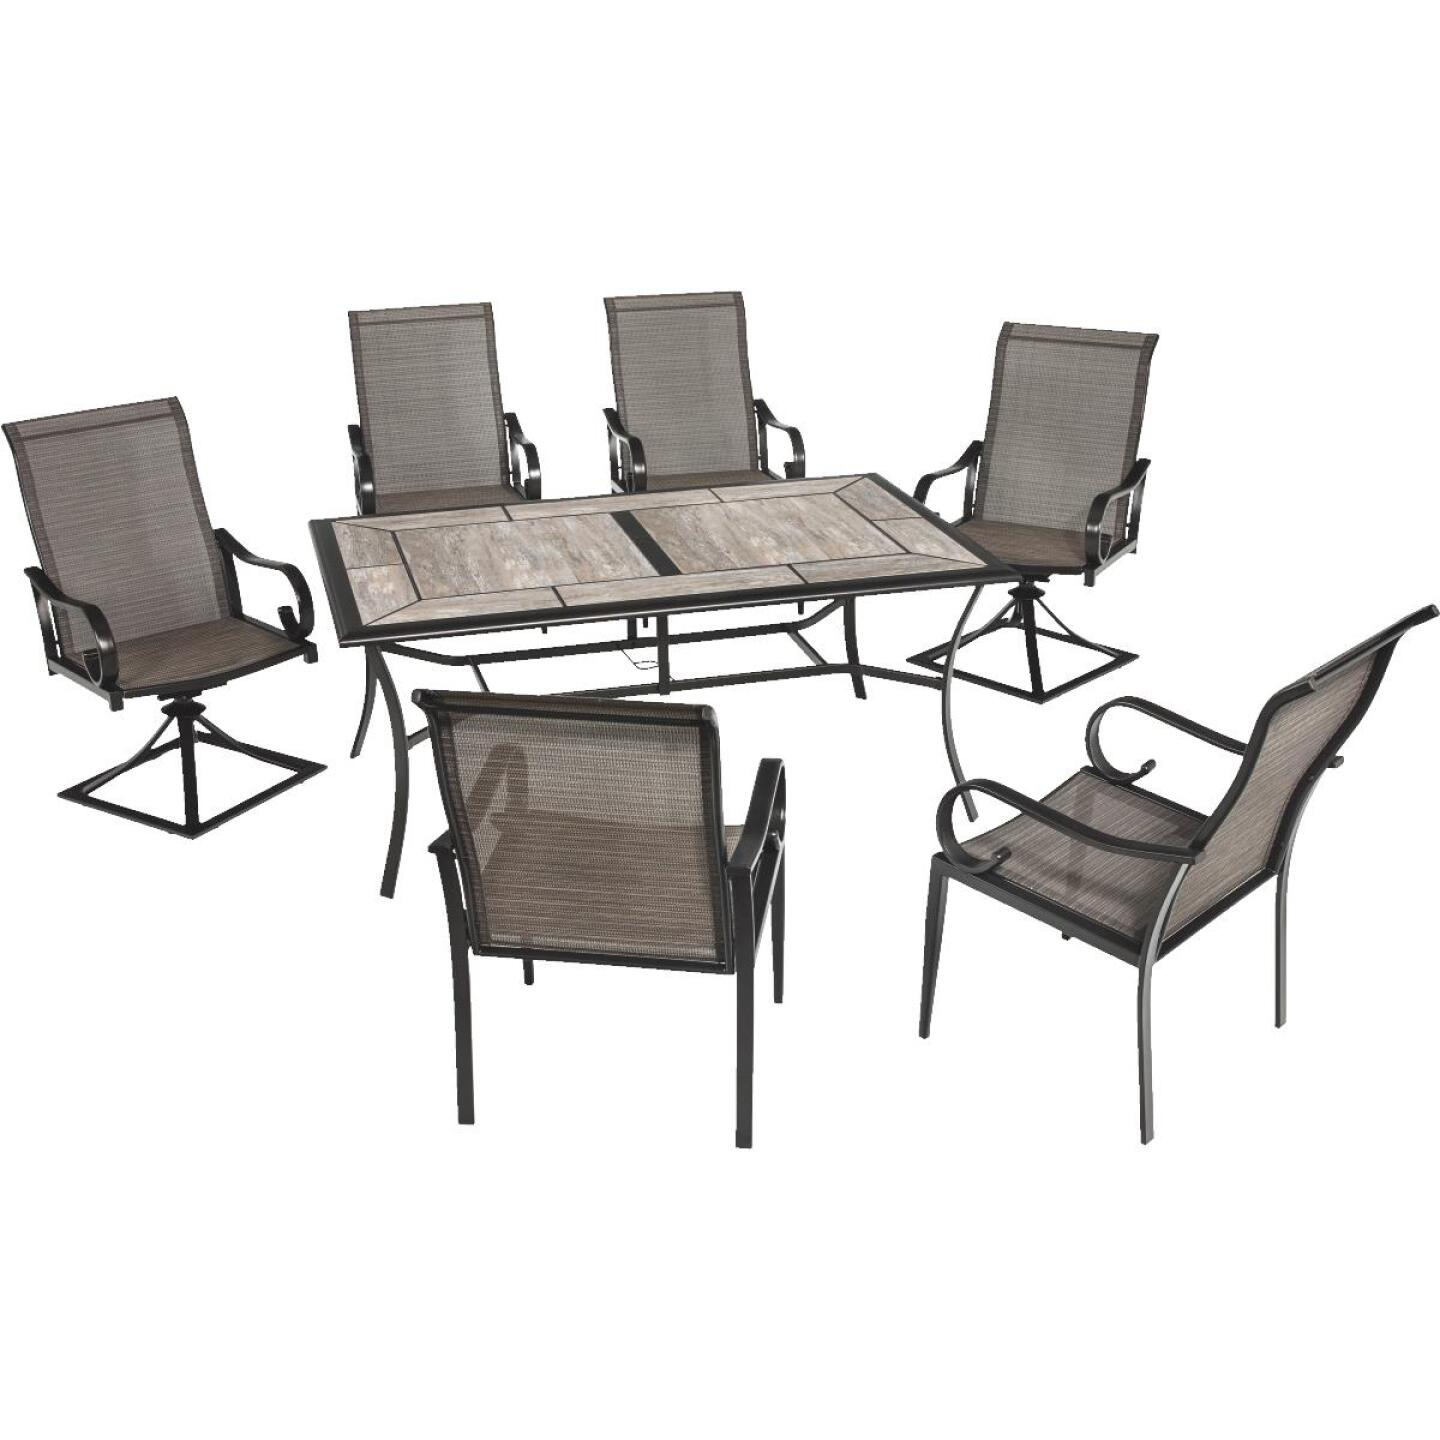 Outdoor Expressions Berkshire 7-Piece Dining Set Image 198